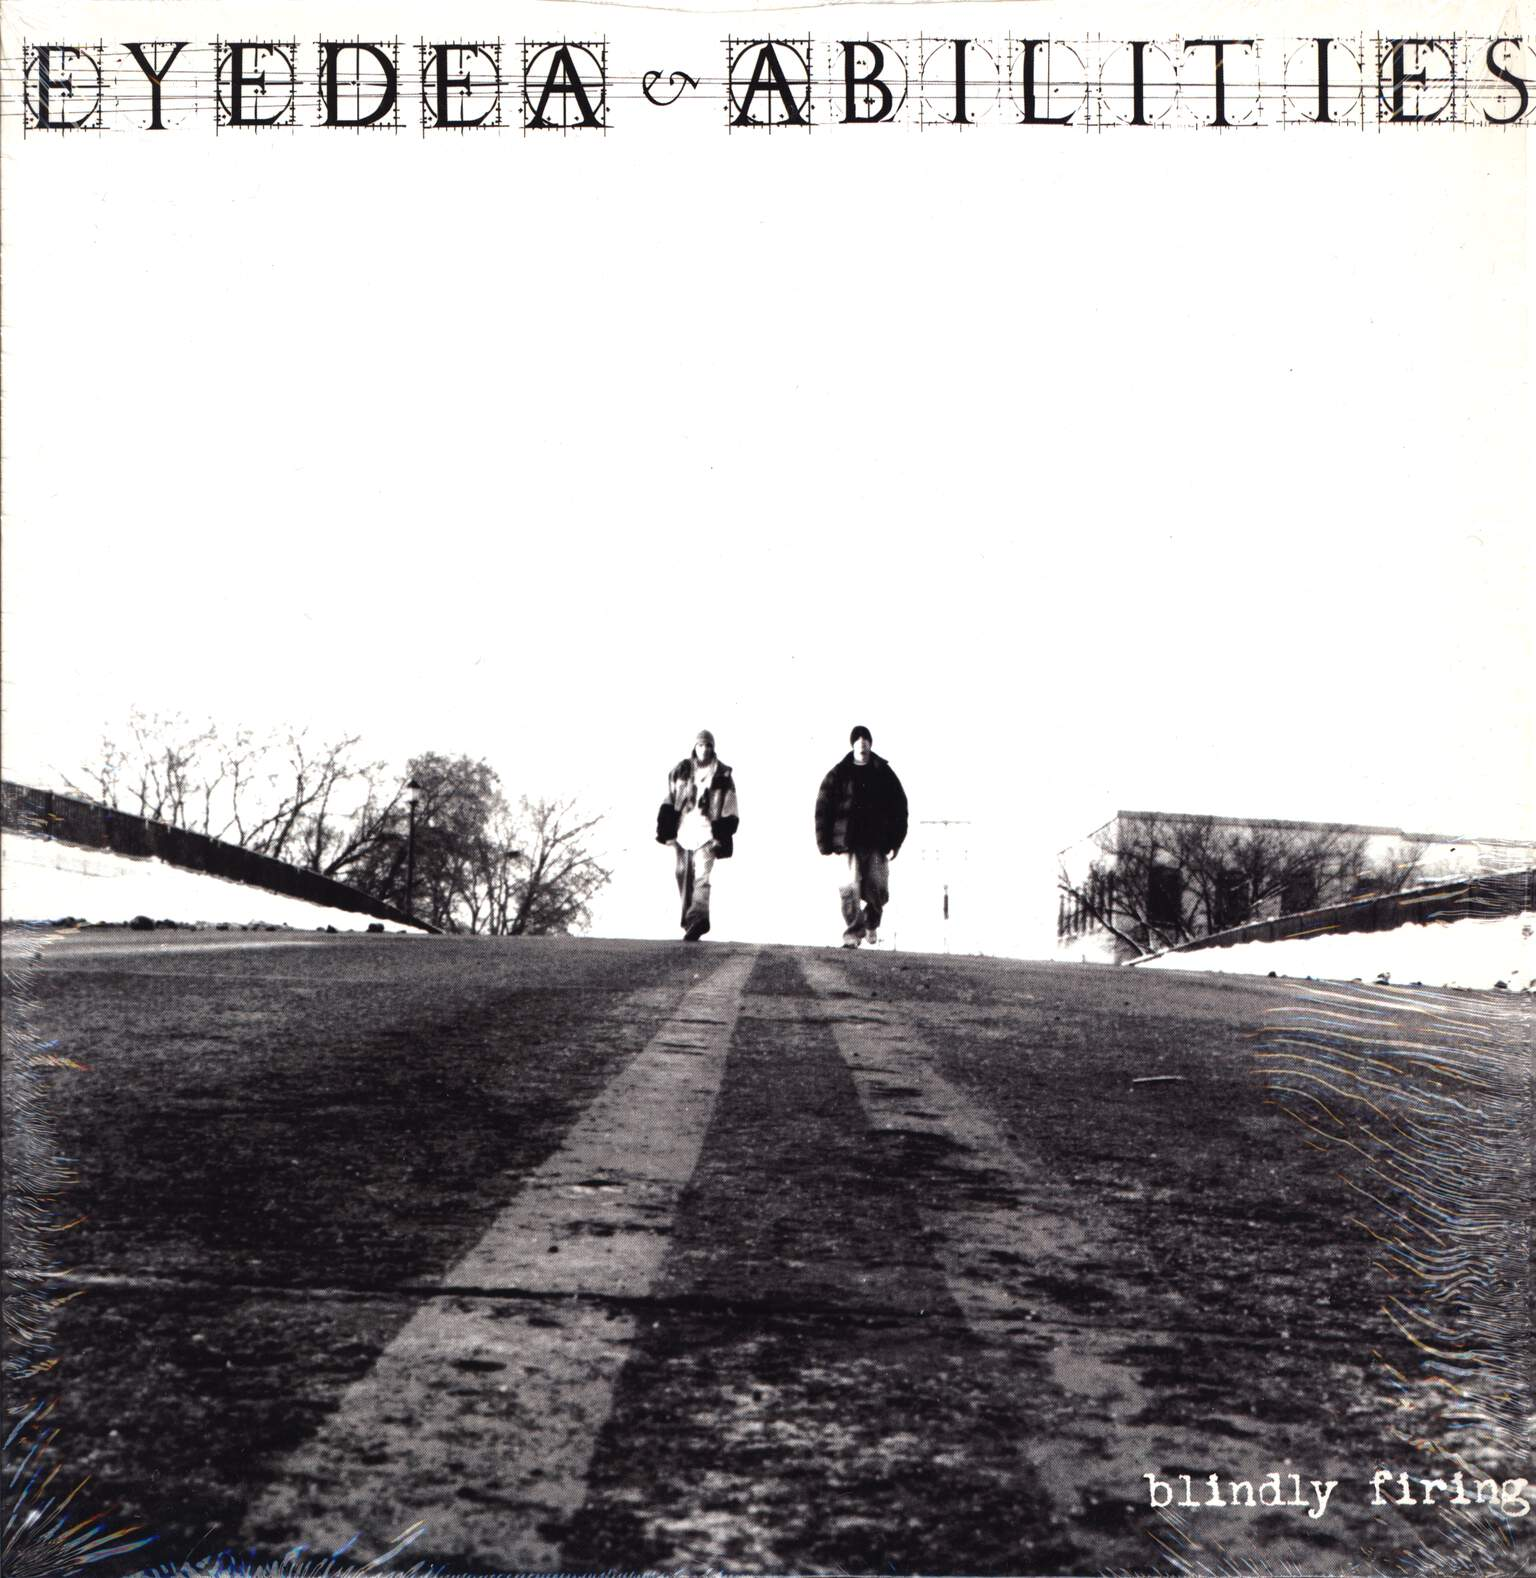 "Eyedea & Abilities: Blindly Firing, 12"" Maxi Single (Vinyl)"